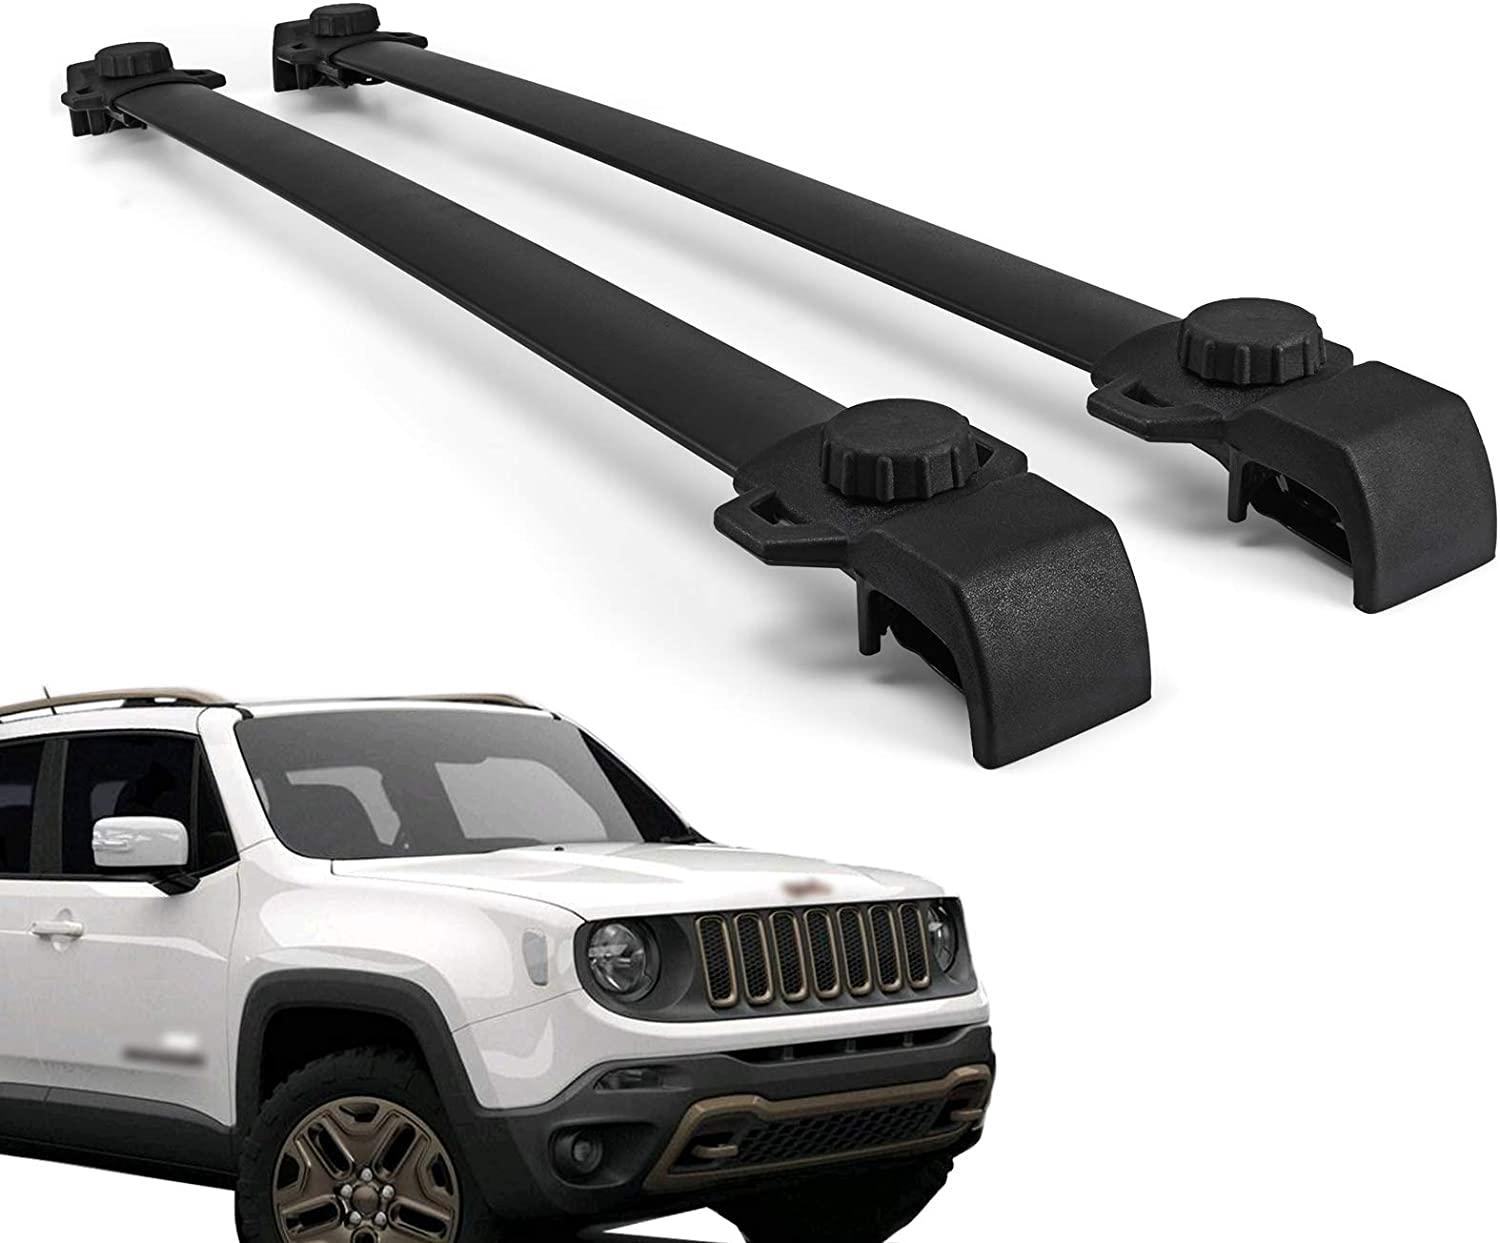 Mophorn Roof Rack Cross Bars Baggage Locking Roof Rail Crossbars Luggage Cargo Ladder Bike Load Roof Cross Bars Black (for Jeep Renegade Black, for Jeep Renegade 2014-2018 Black)